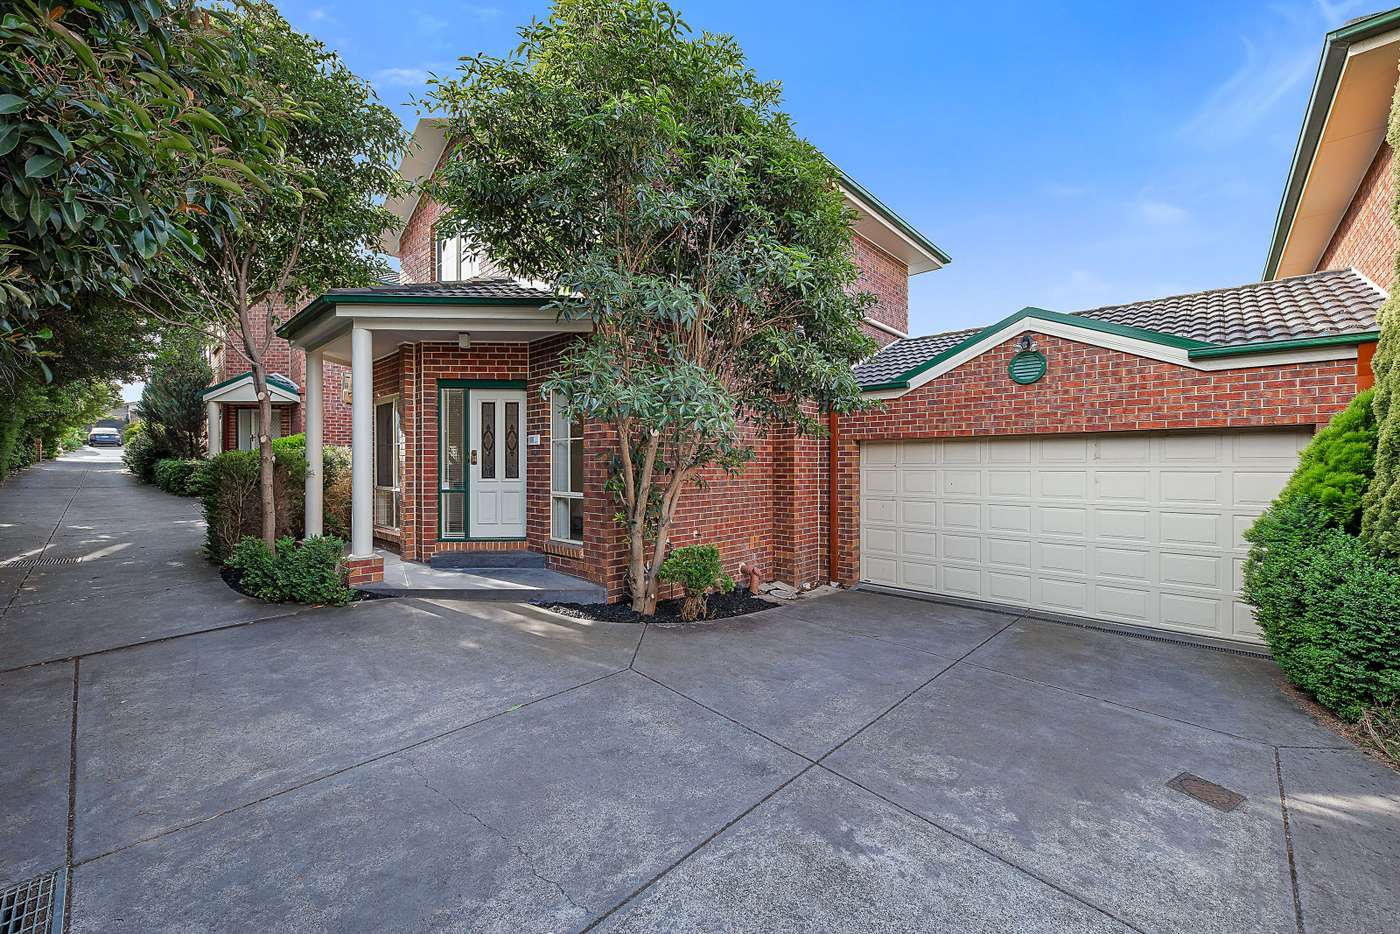 Main view of Homely townhouse listing, 3/4 Goodin Grove, Glen Waverley, VIC 3150